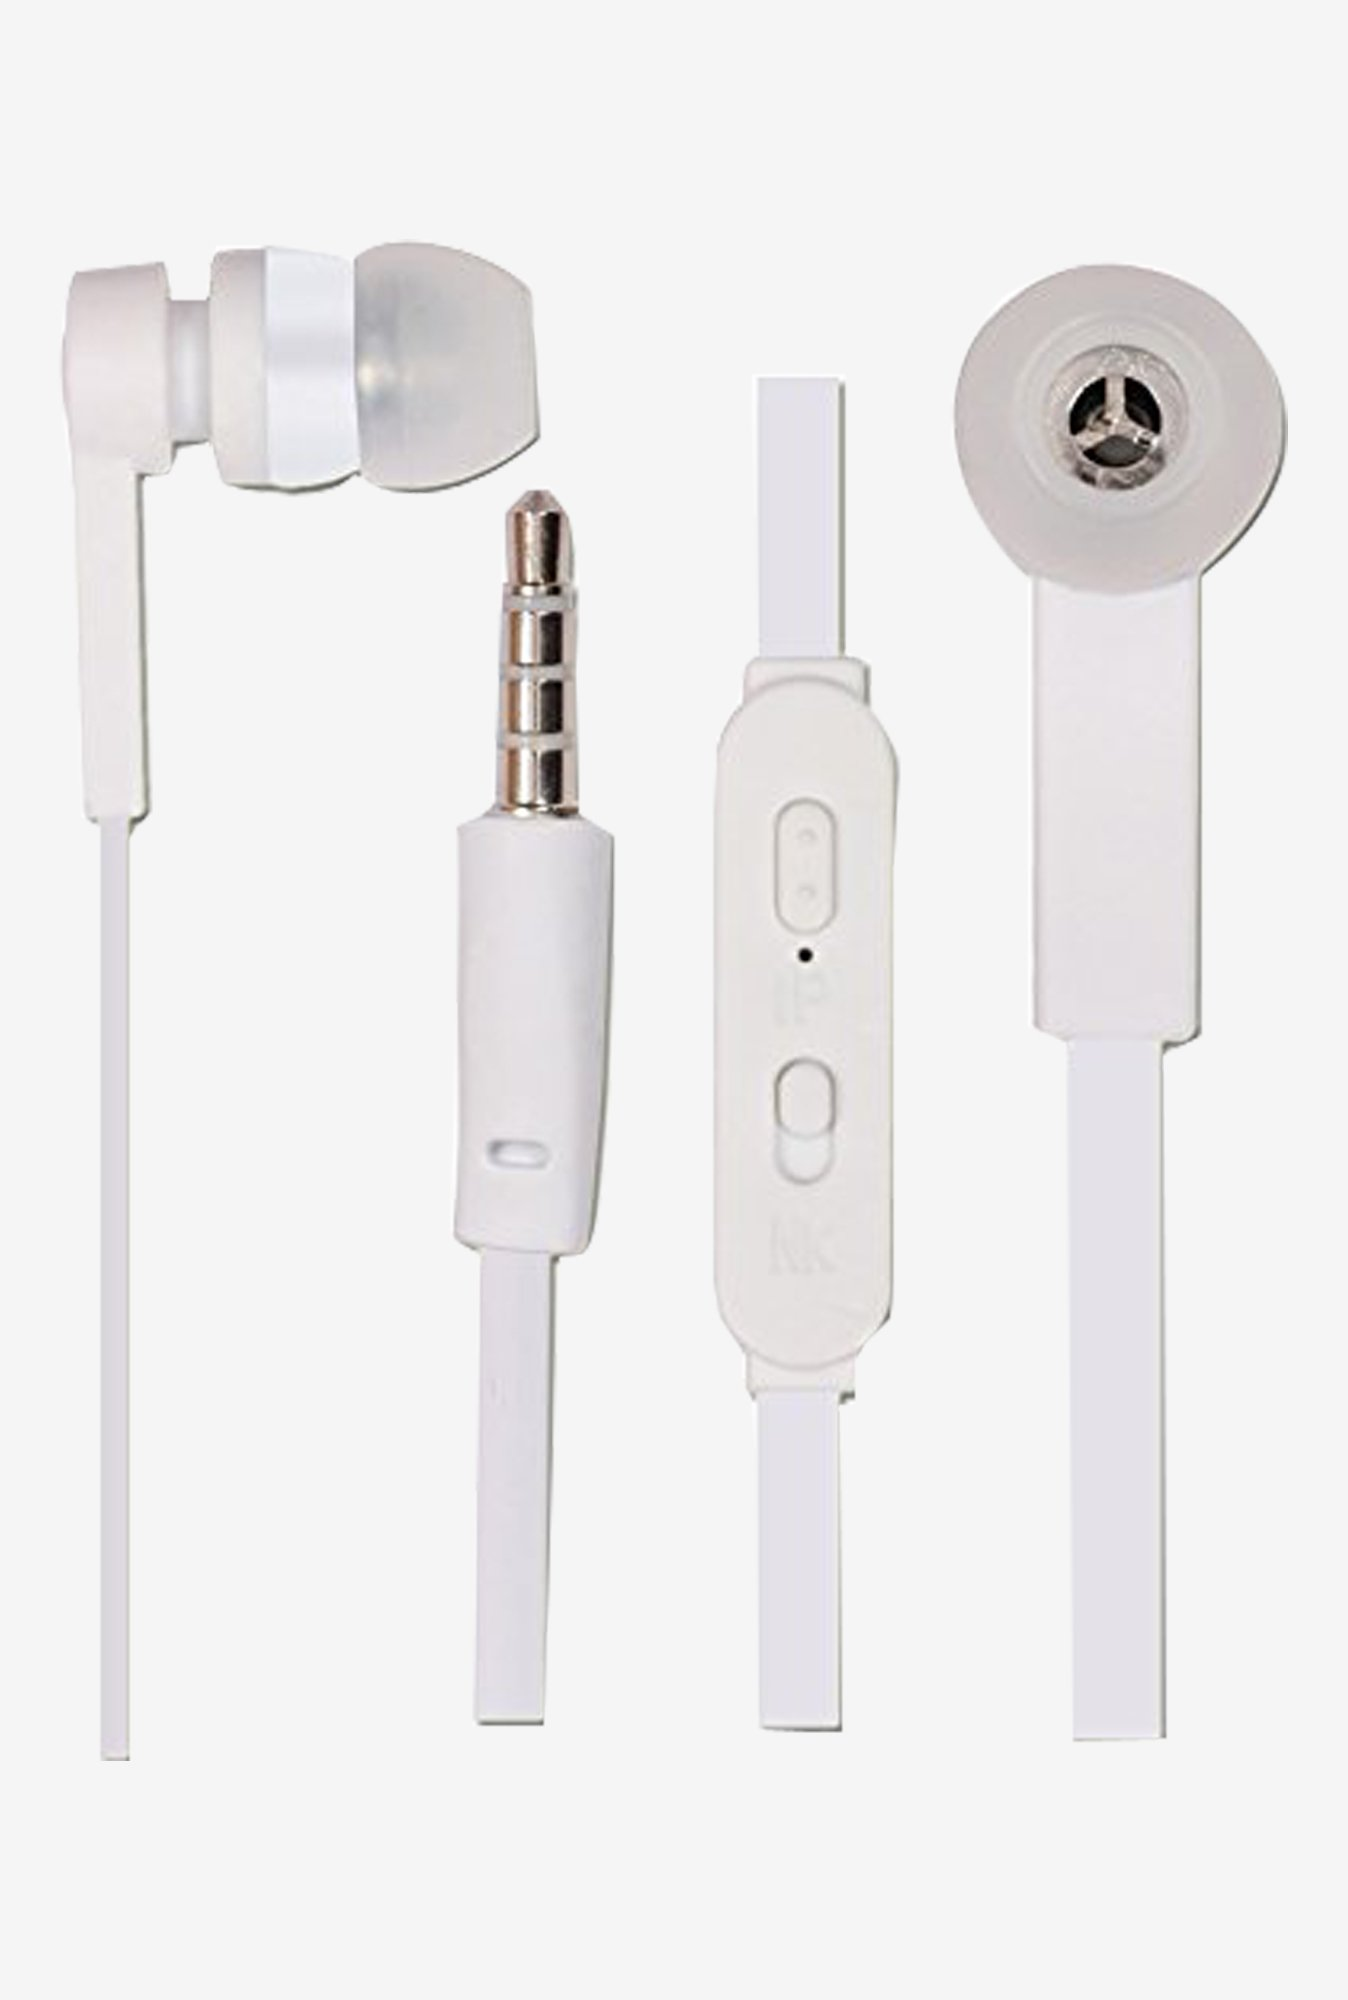 Jkobi In The Ear Bud Handsfree Headset Earphones (White)